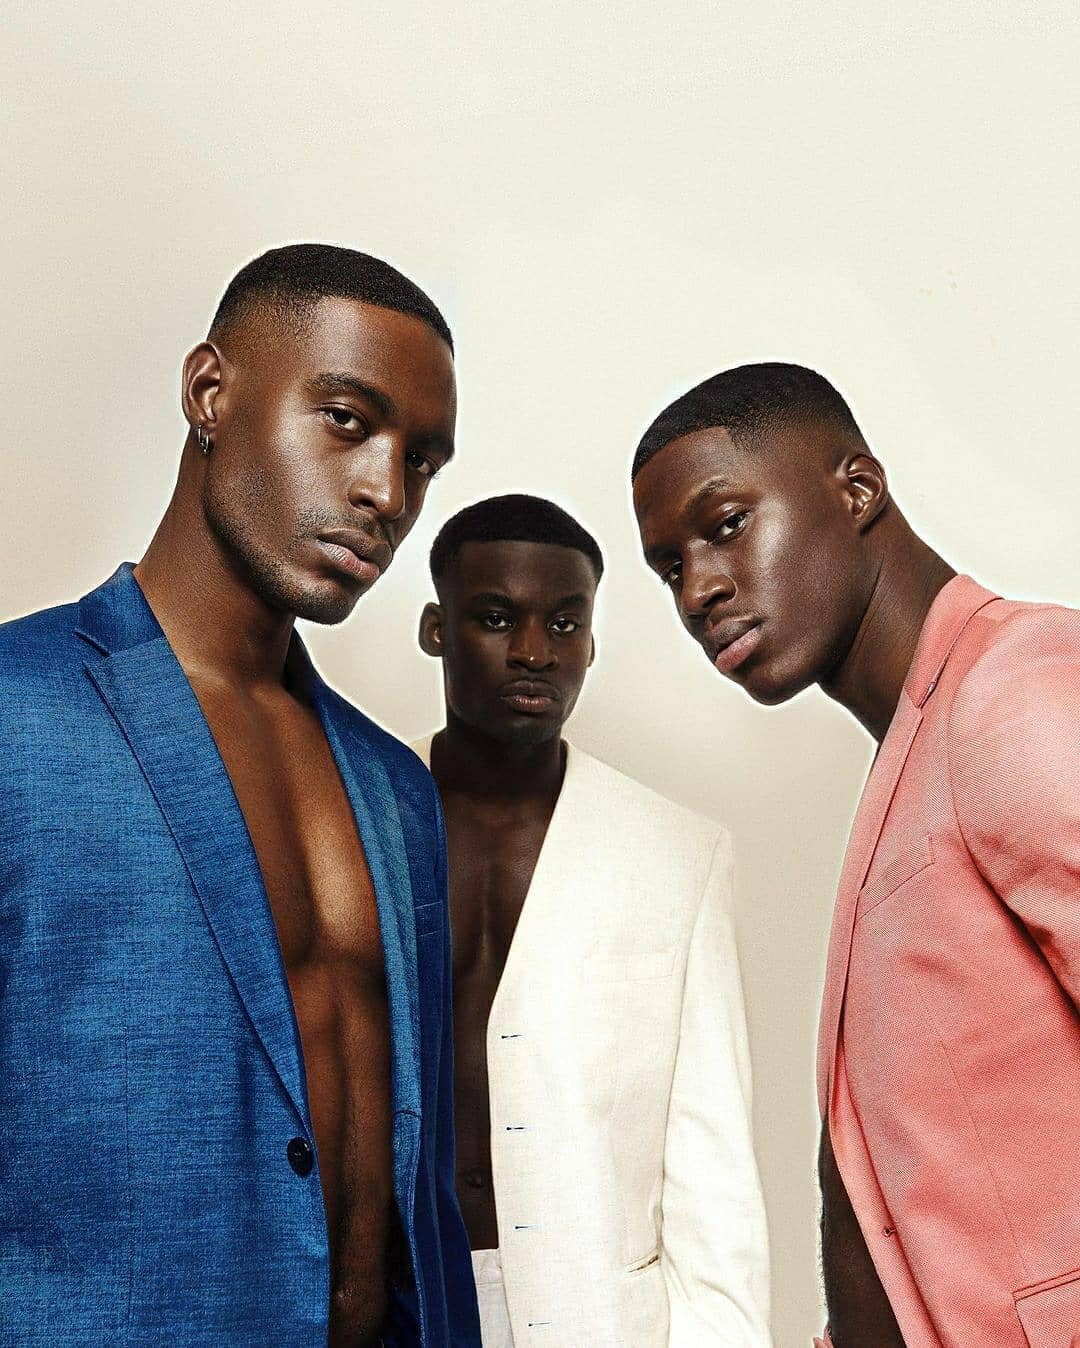 Afro Style Magazine_Black African Men3